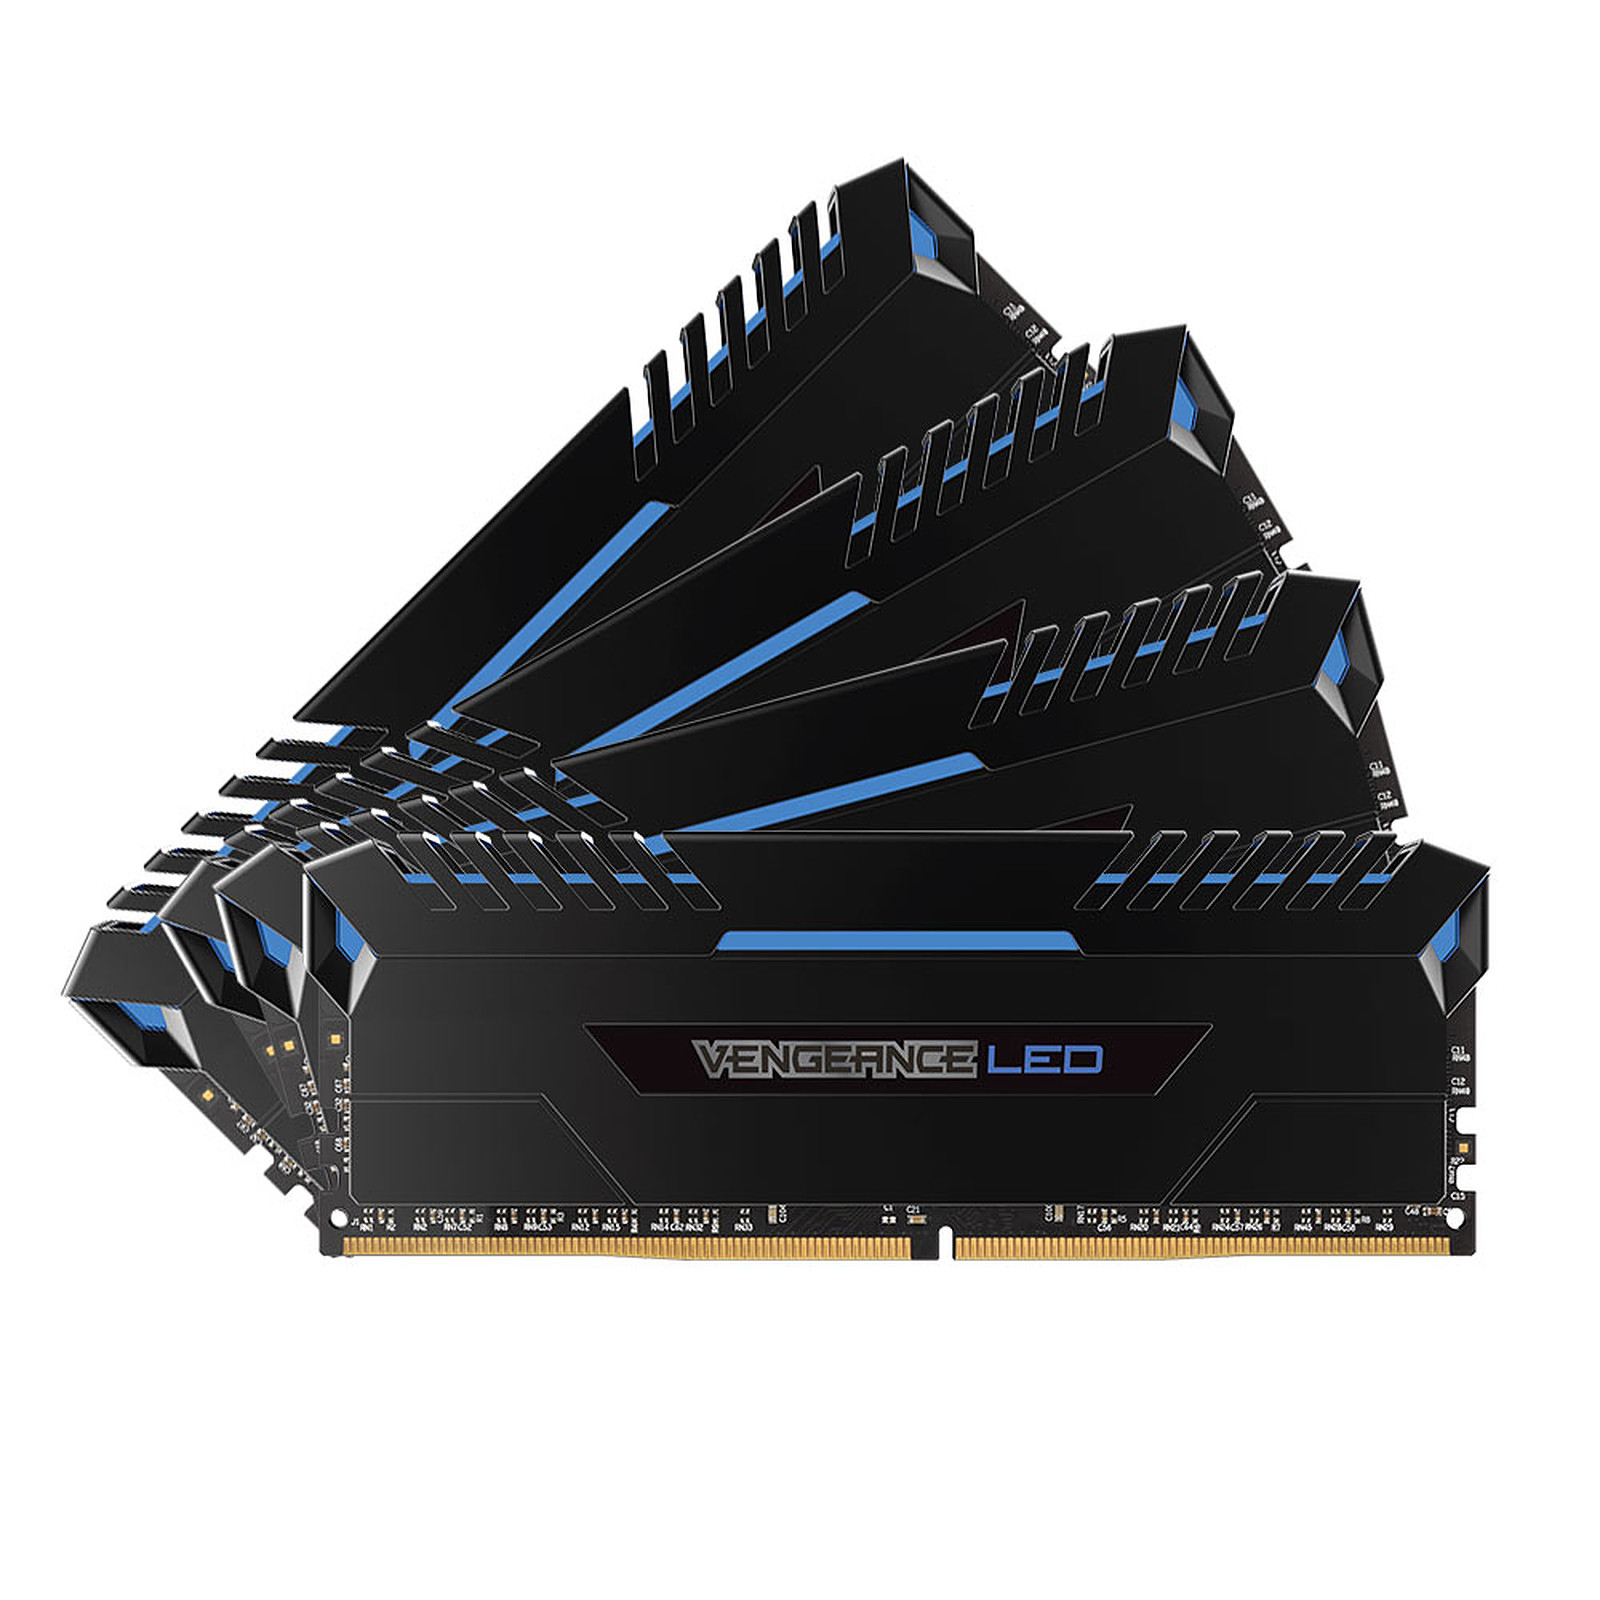 Corsair Vengeance LED Series 32 Go (4x 8 Go) DDR4 3000 MHz CL16 - Bleu